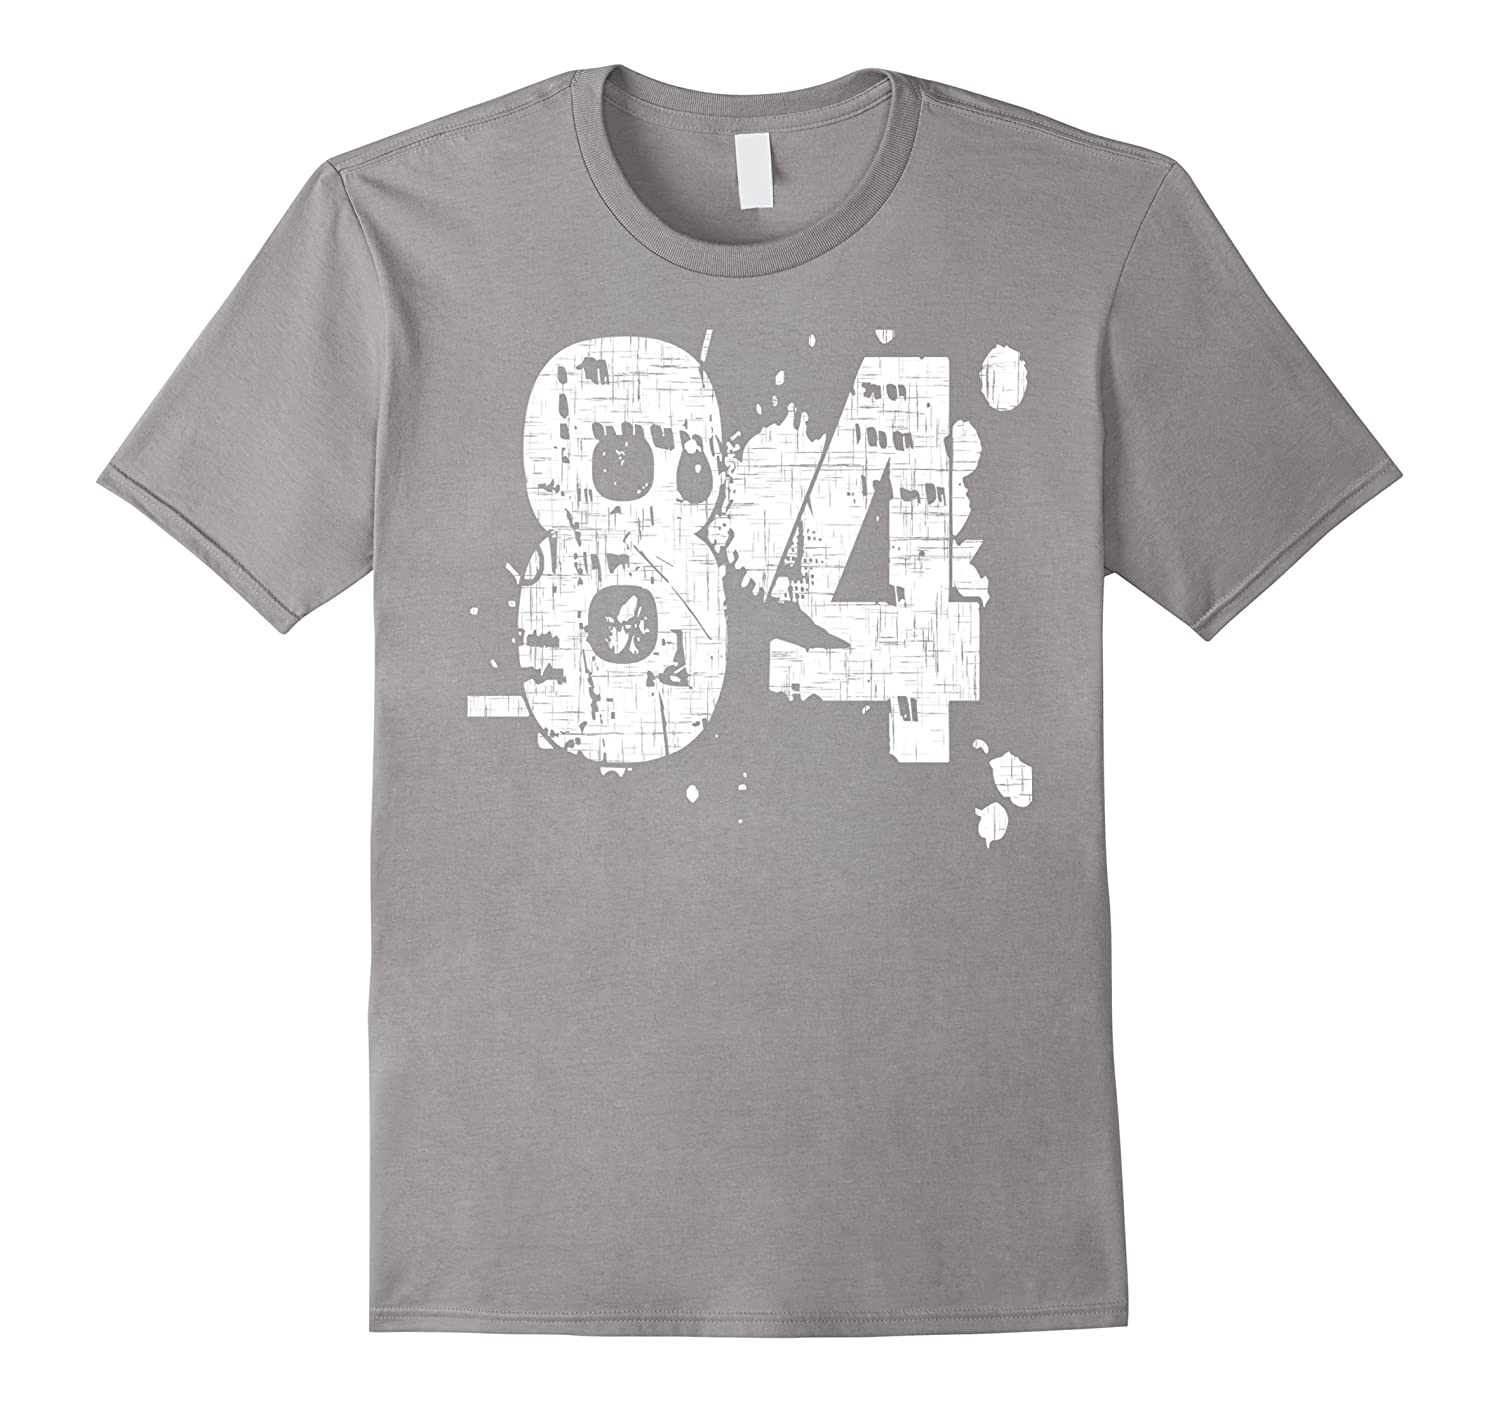 84 Numbered T-Shirt printed front and back in super grunge-PL